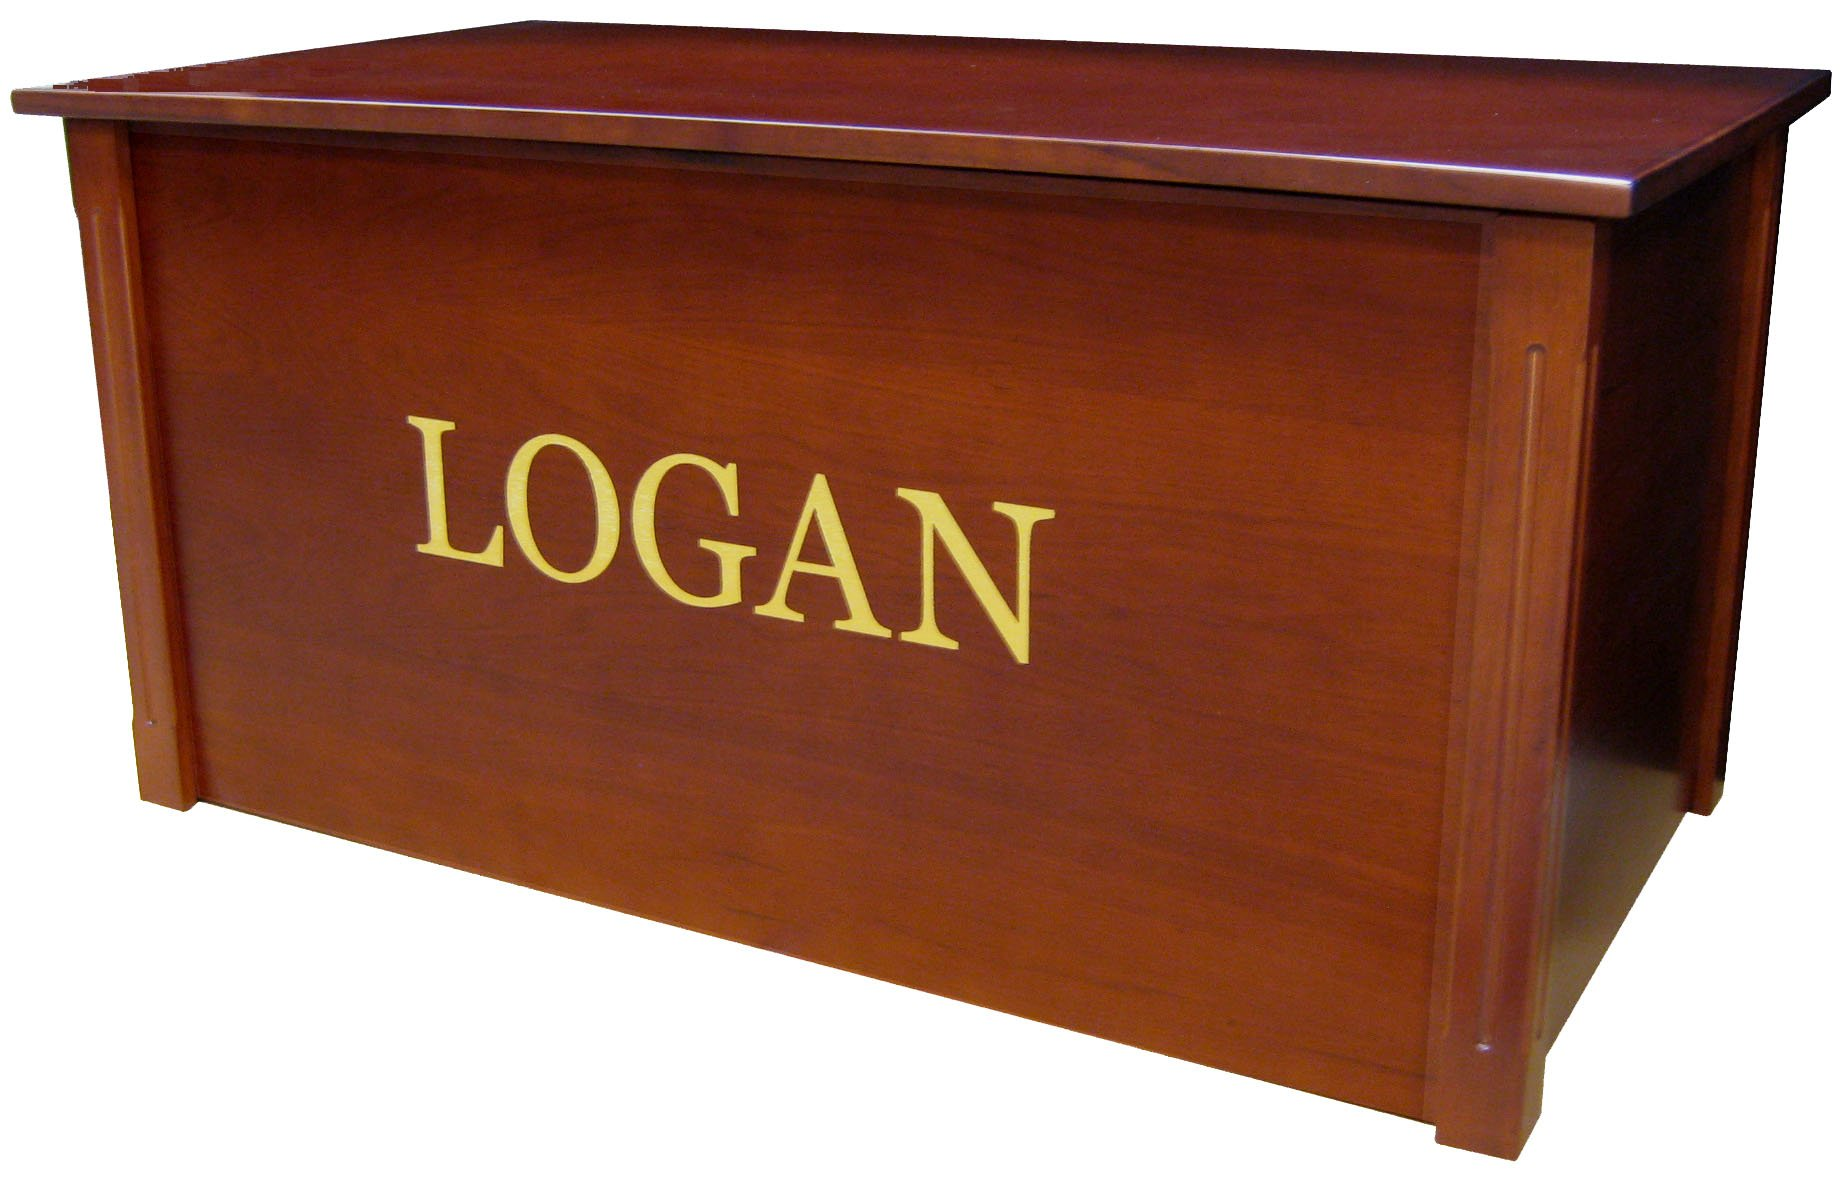 Wood Toy Box, Large Cherry Toy Chest, Personalized Georgia Font, Custom Options (Standard Base - Gold Lettering)